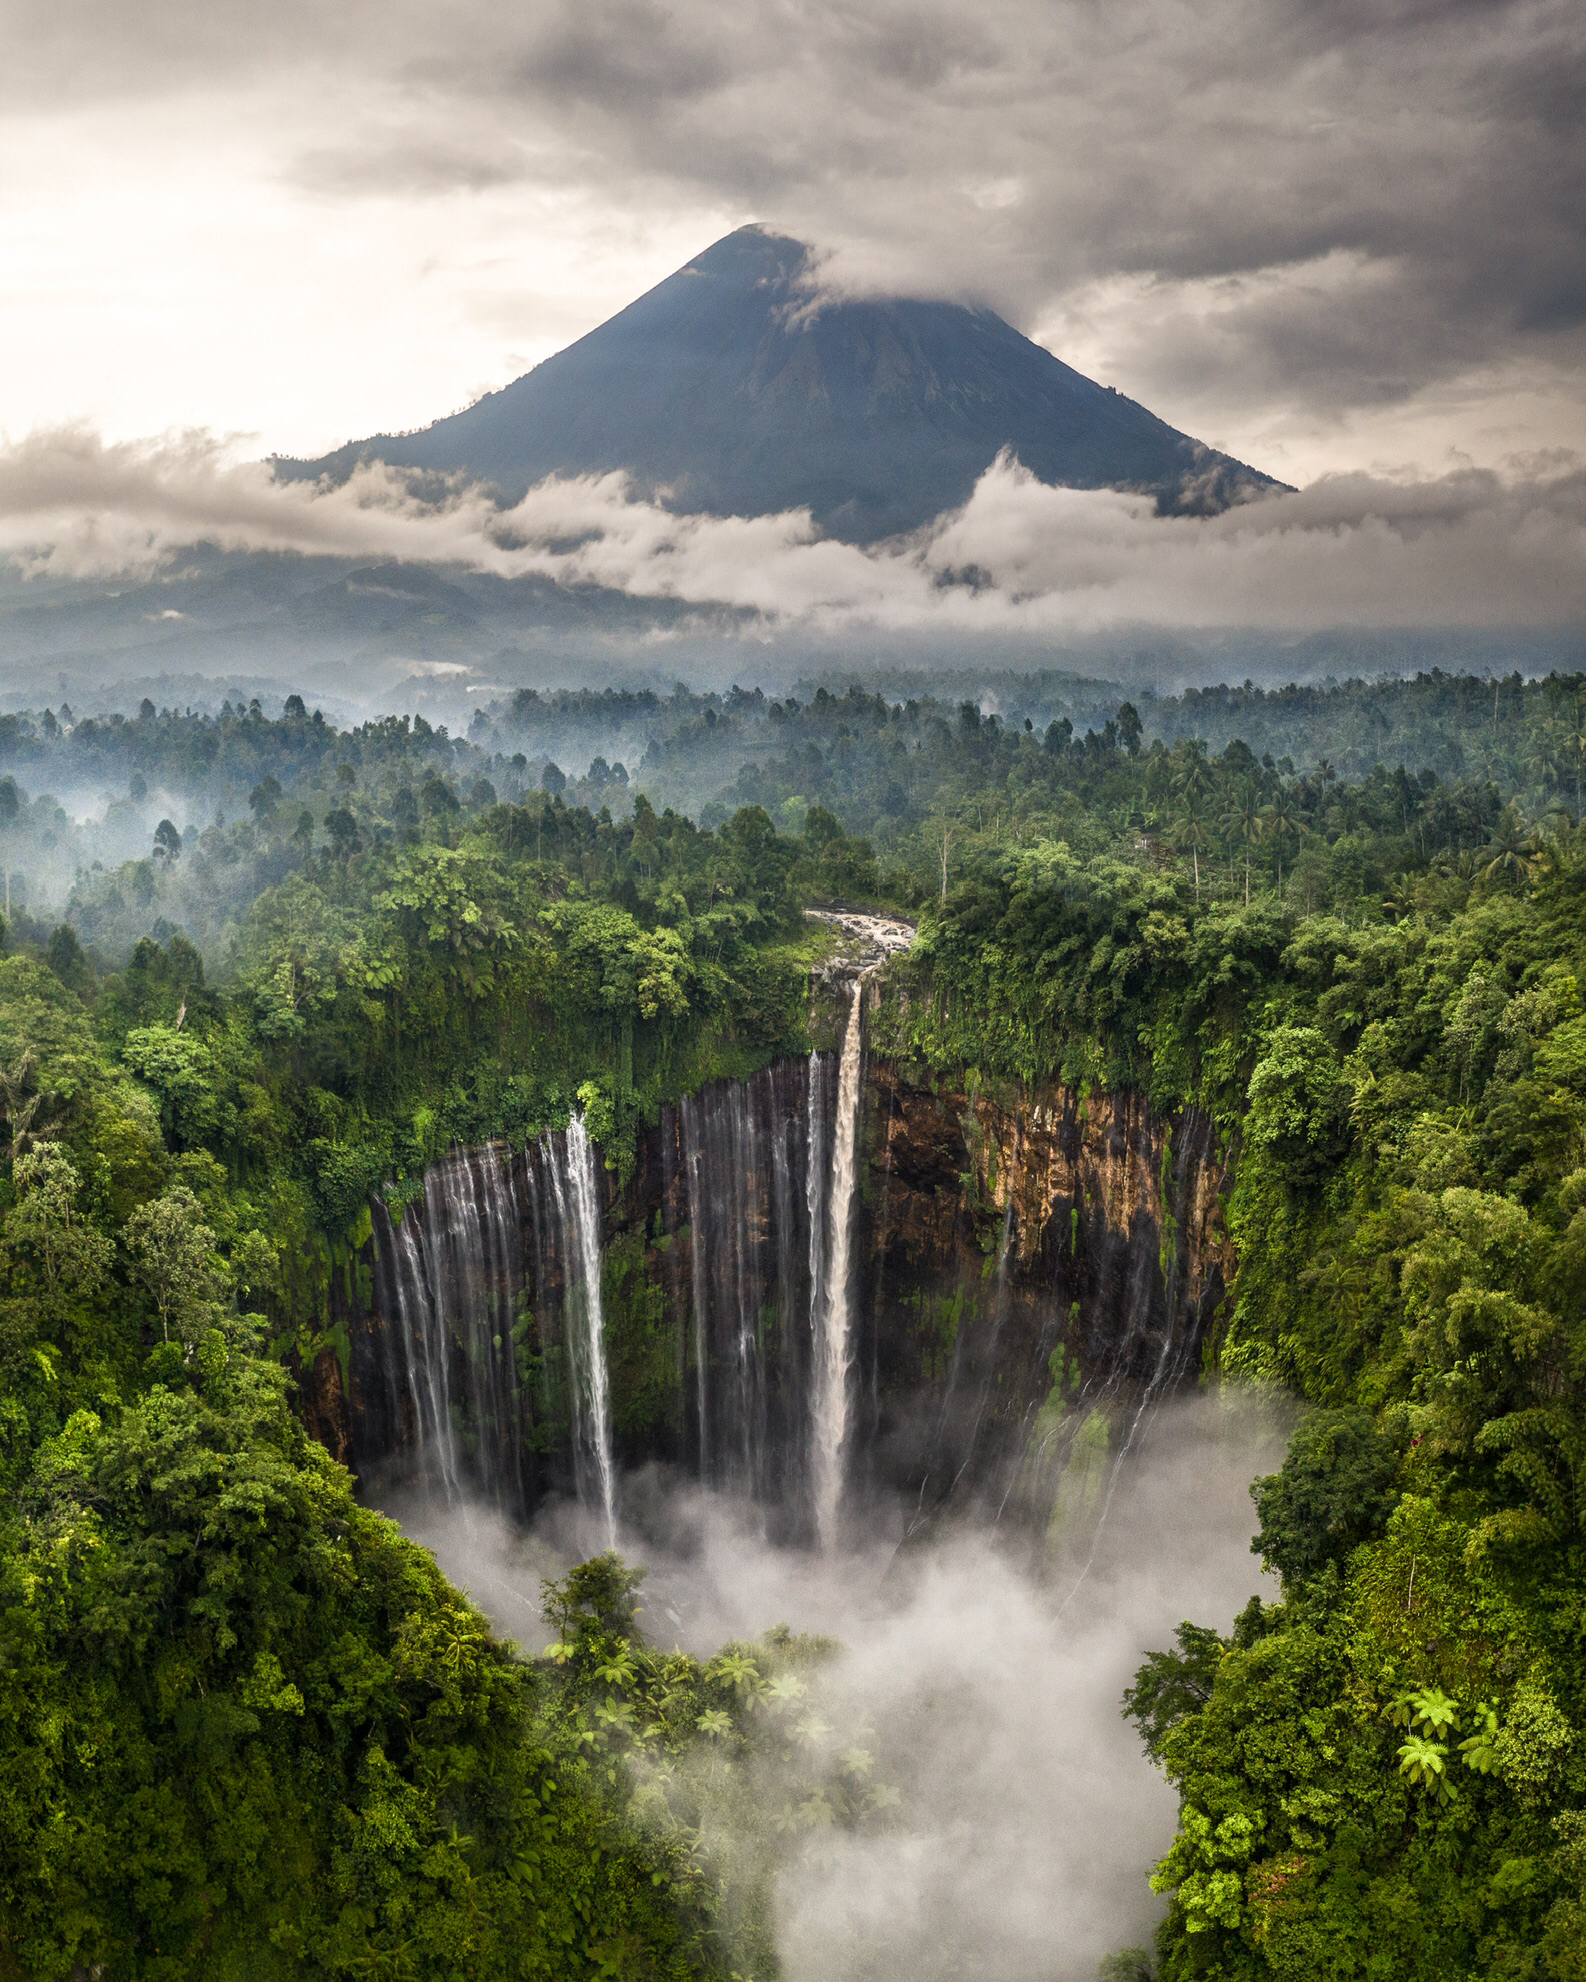 Indonesia's largest waterfall, East Java. Photo: Hugo Healy/AGORA images